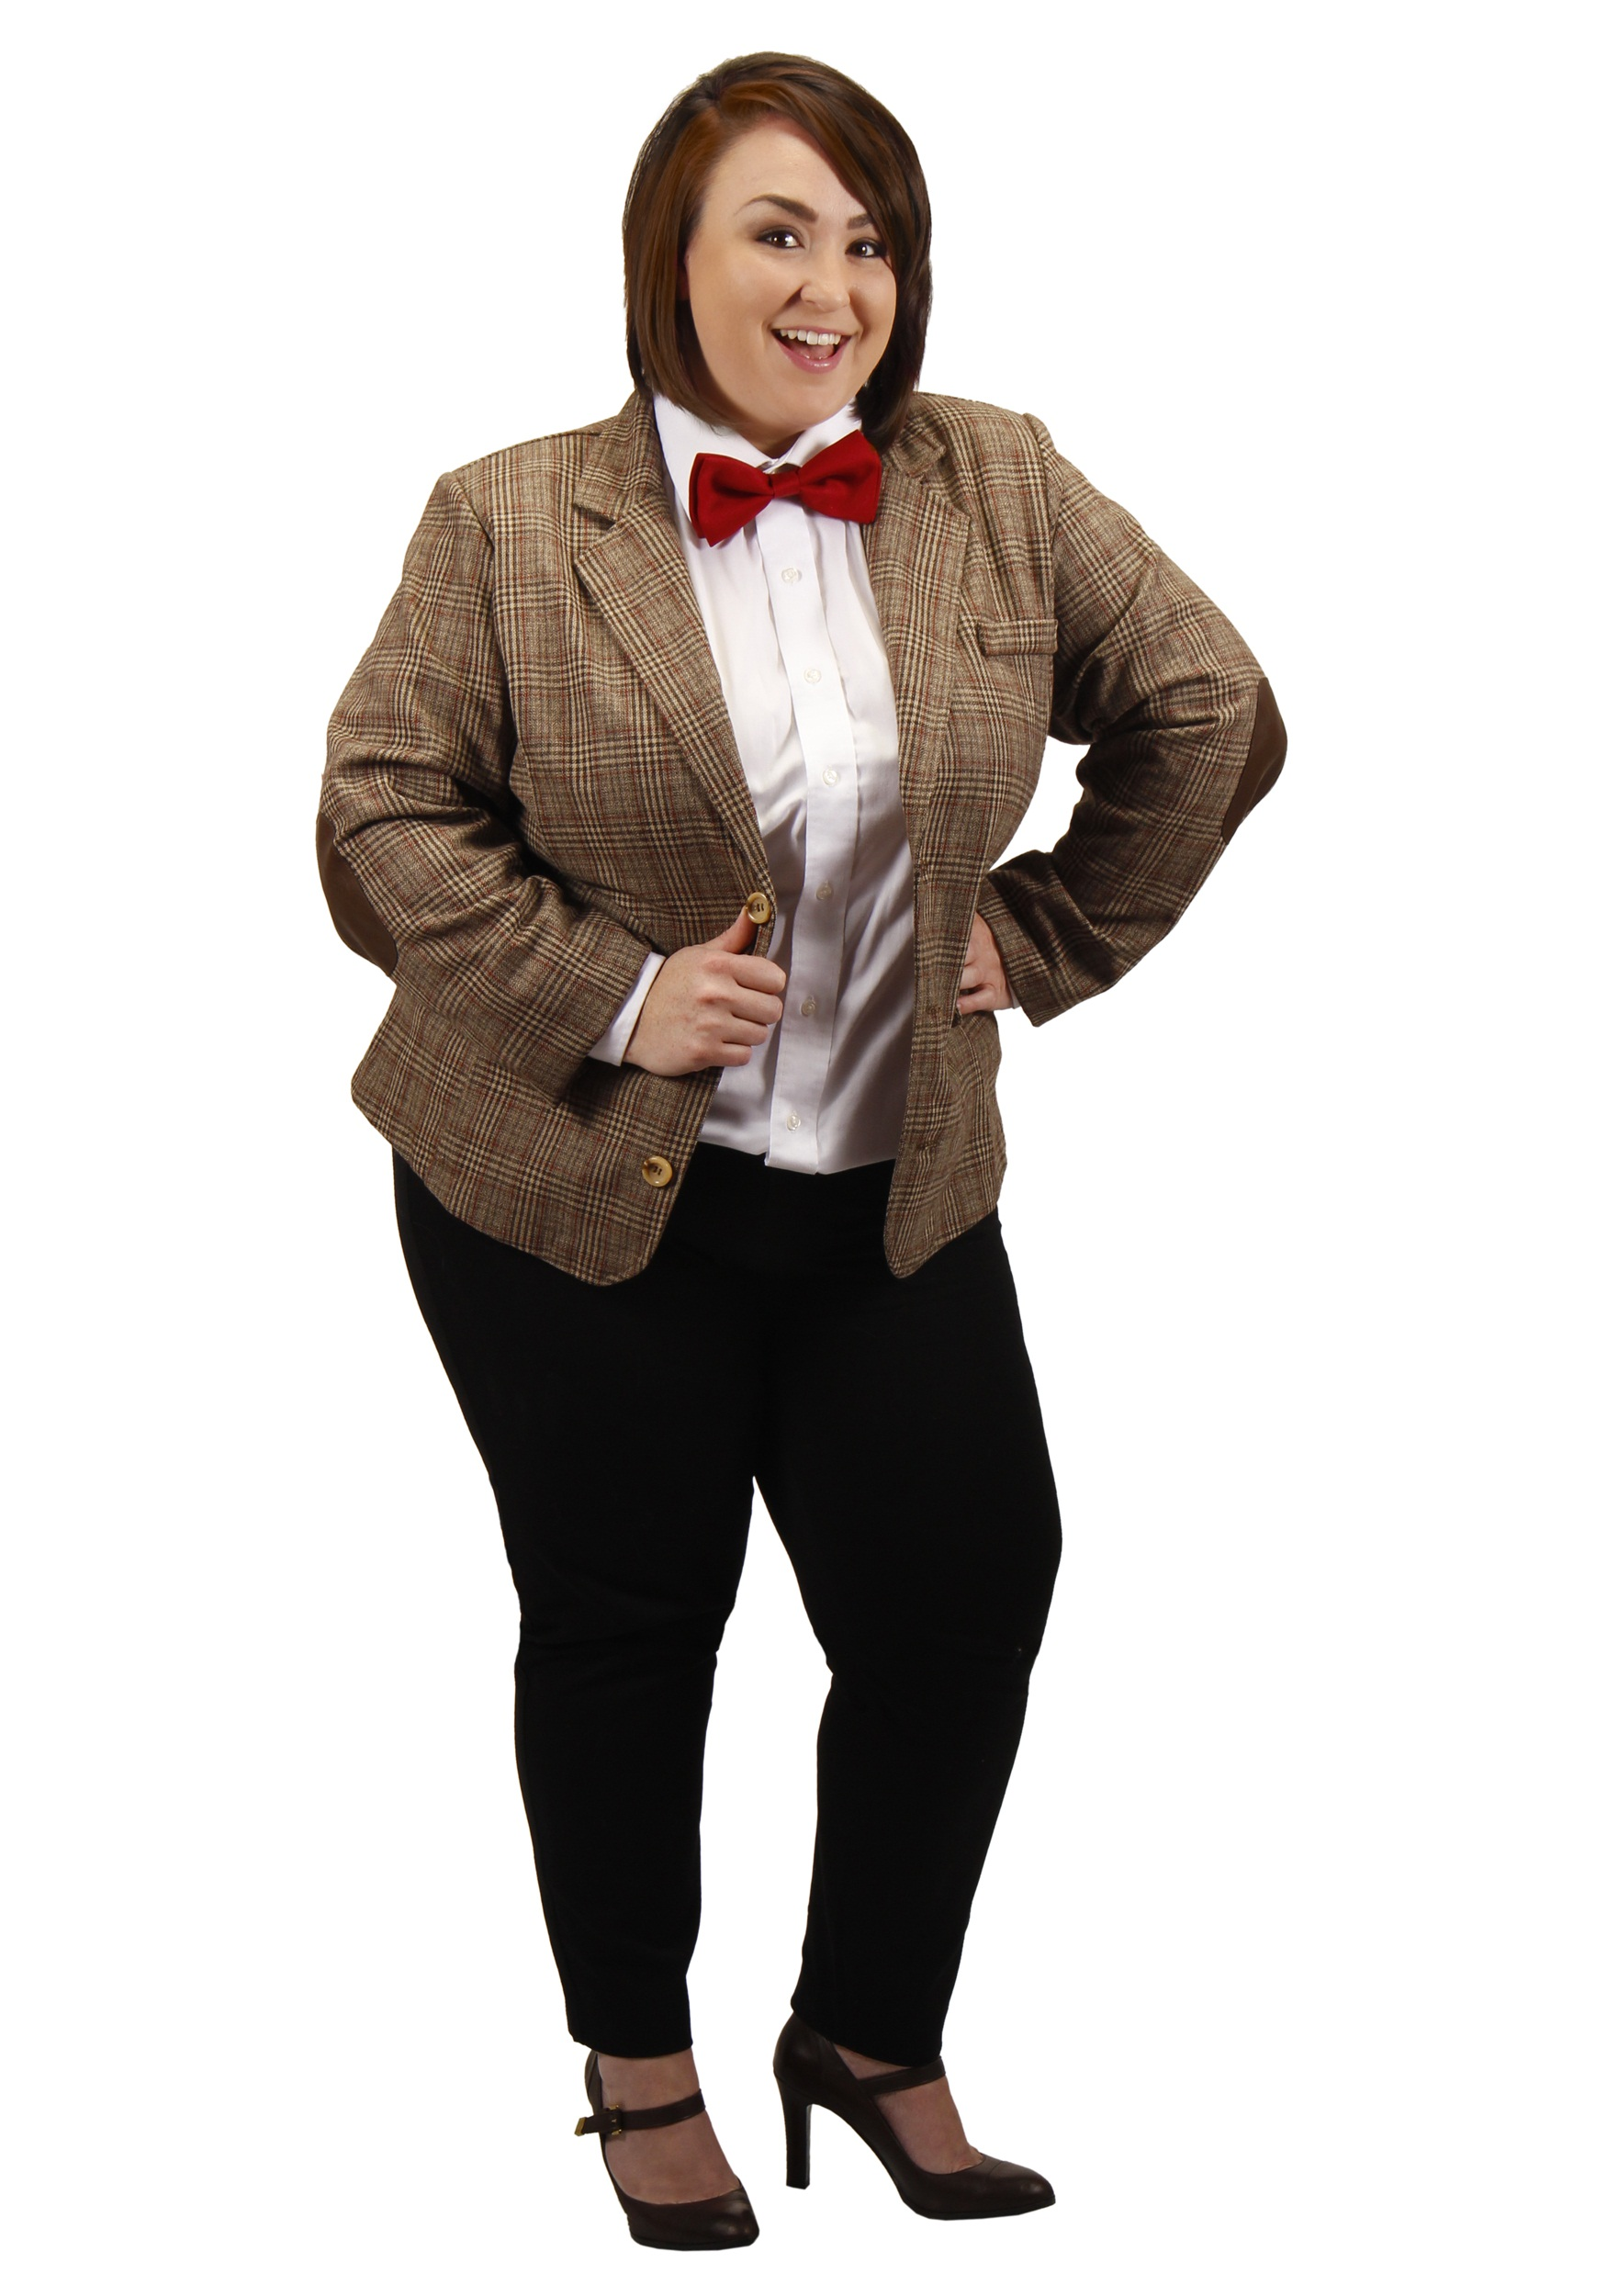 276961dbfb8 Plus Size Eleventh Doctor Women s Costume Jacket